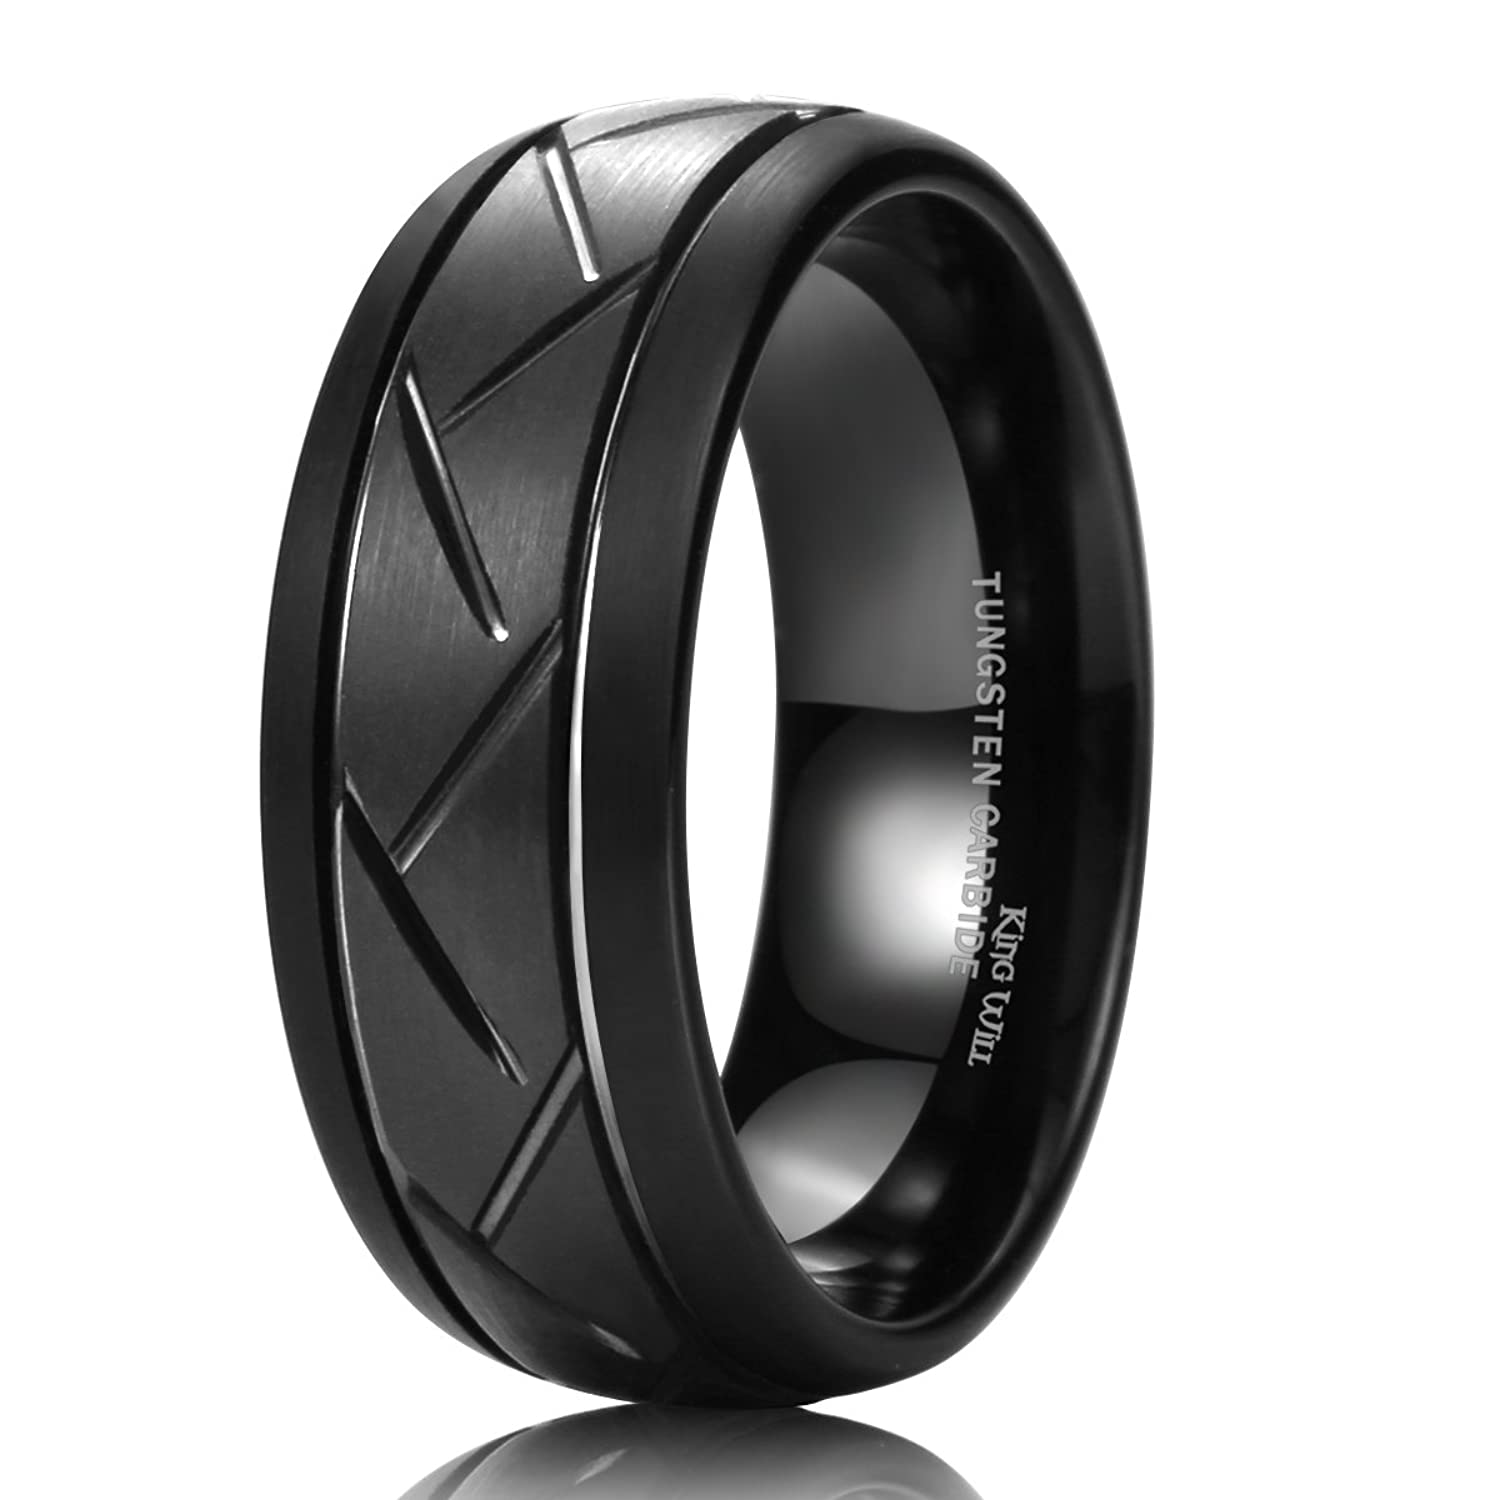 black band blue strongest popular mens brag best precious ring titanium metal his and gem hers non toughest wedding expensive men bands for inlay rings most with boston her